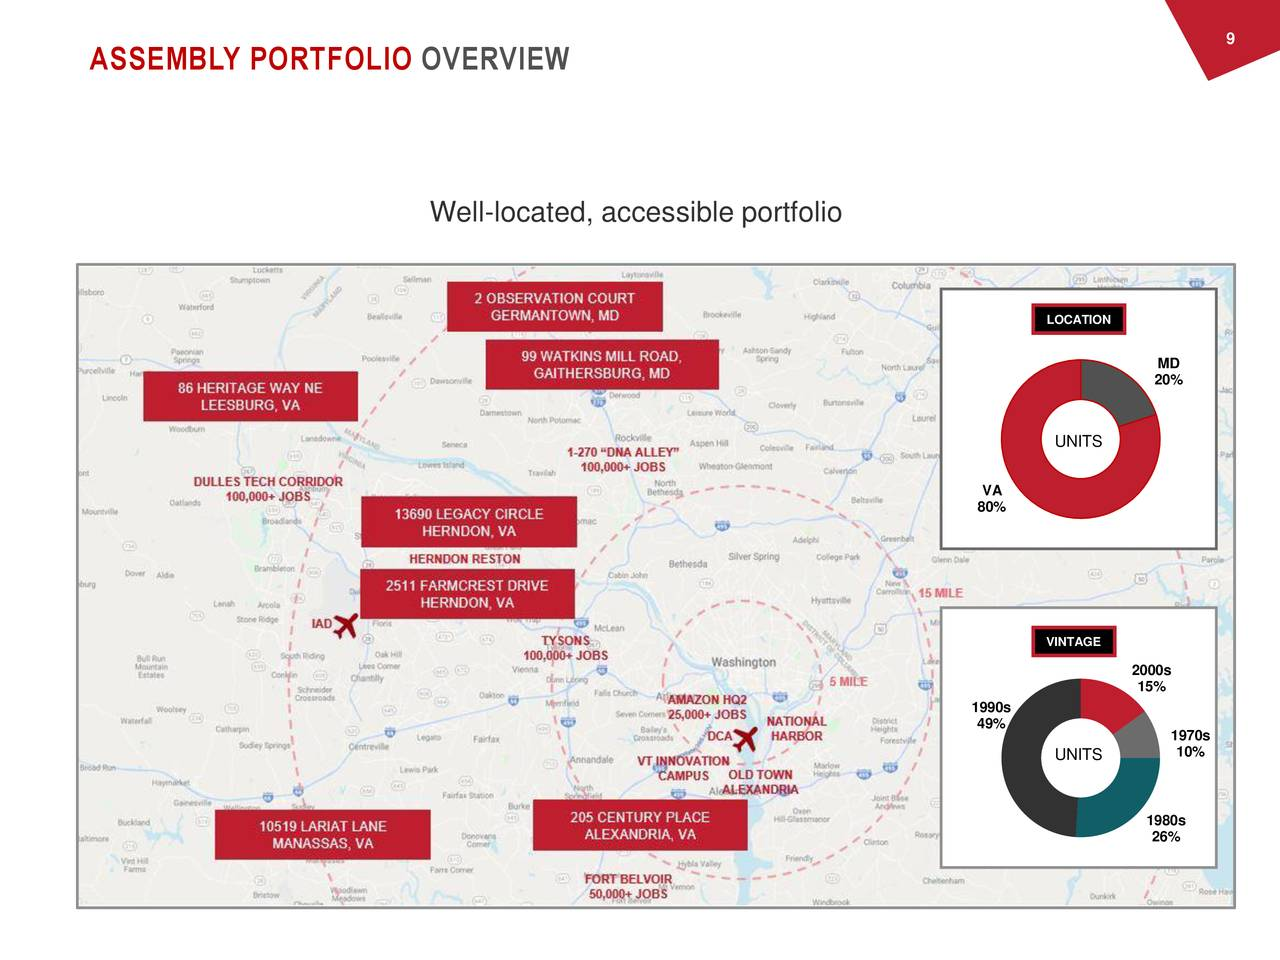 ASSEMBLY PORTFOLIO OVERVIEW Well-located, accessible portfolio LOCATION MD 20% UNITS VA 80% VINTAGE 2000s 15% 1990s 49% 1970s UNITS 10% 1980s 26%